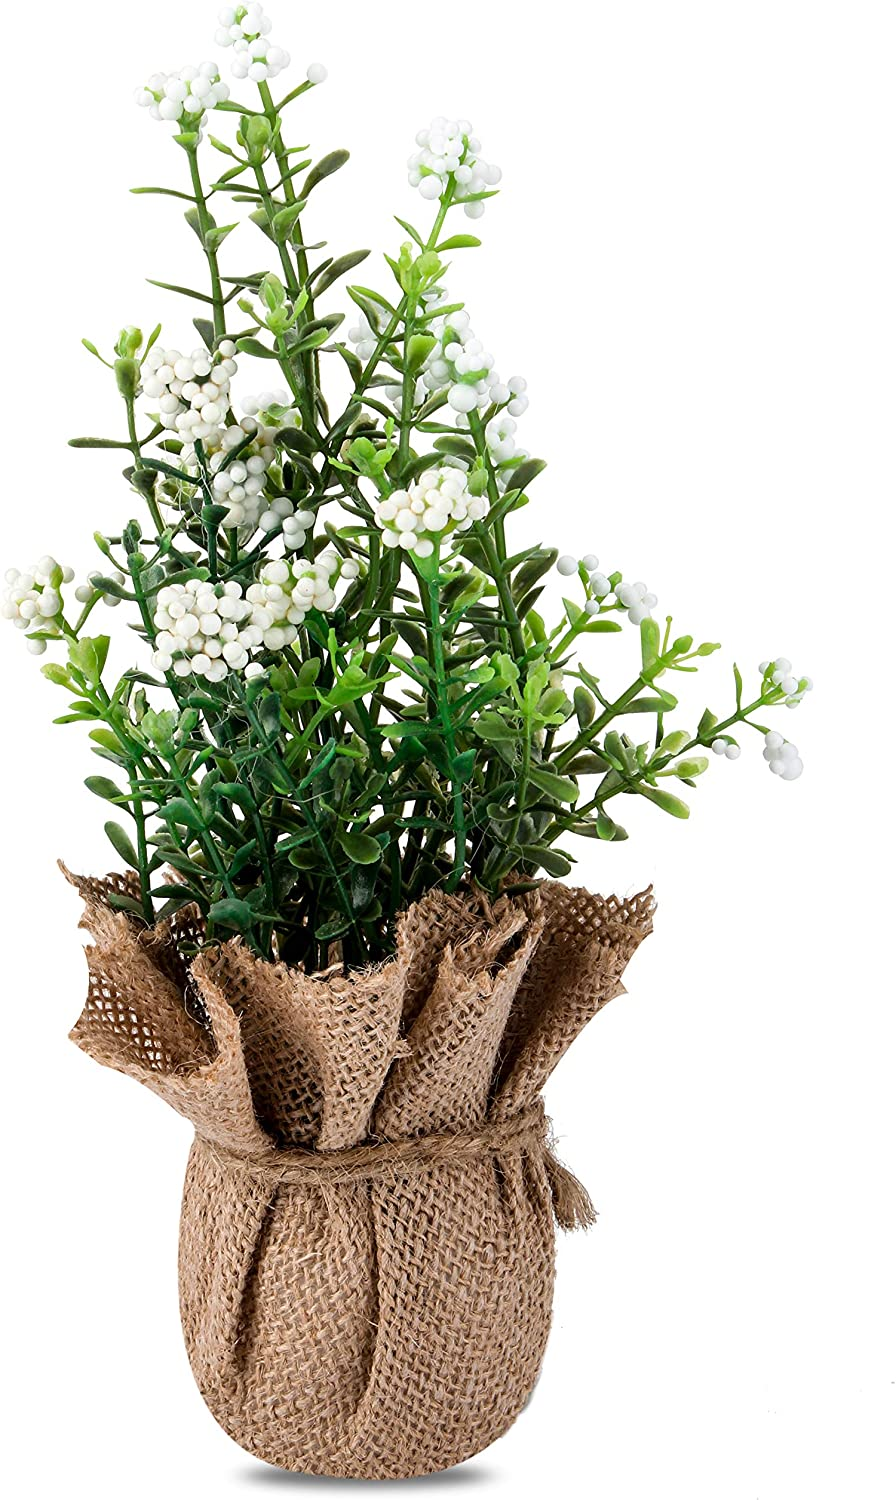 Jusdreen Mini Artificial Foam Flower Bonsai Arrangement with Hemp Rope and Linen for Home Office Décor House Decorations Furniture Decorations(White Flowers)